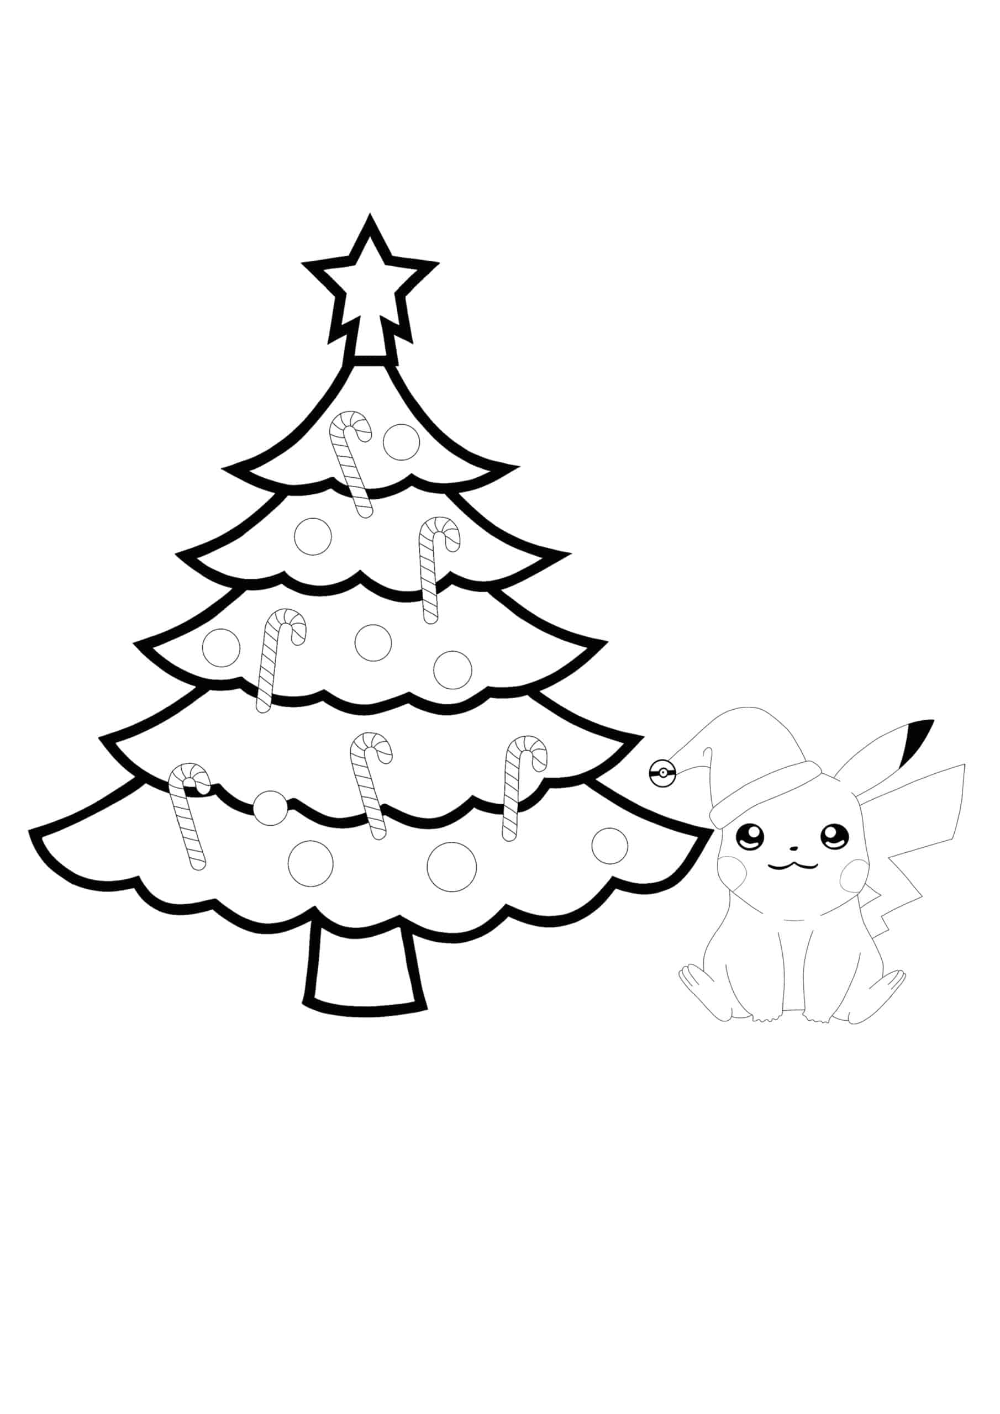 Pikachu and Christmas Tree Coloring Pages - 2 Free ...